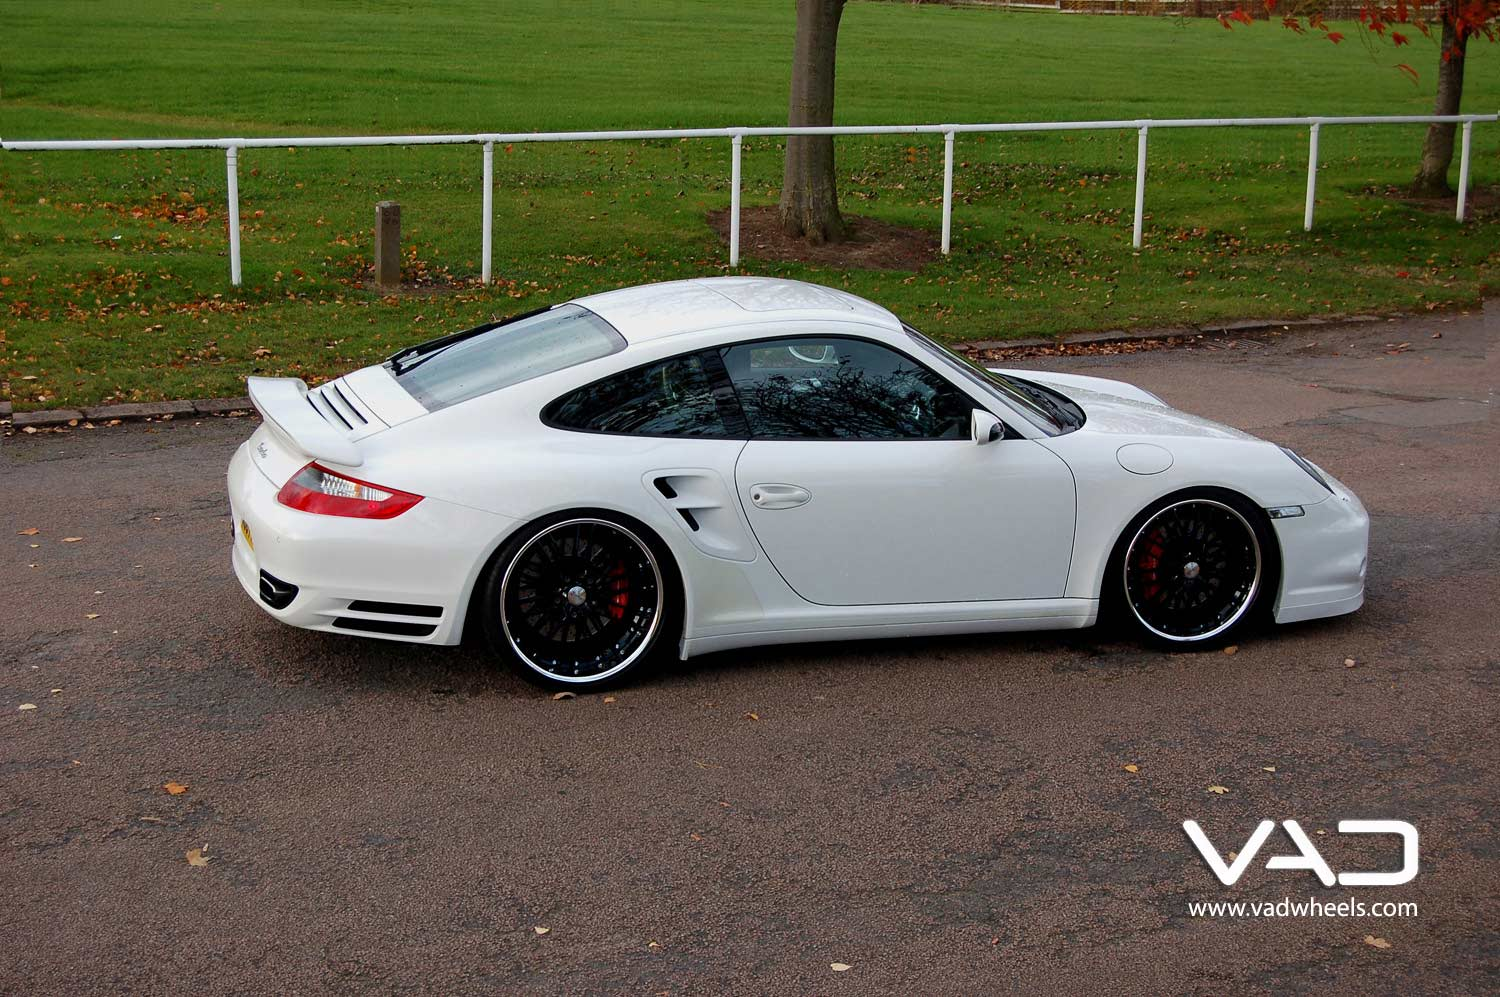 Porsche-997-Turbo-Fitted-With-20''-Trafficstar-RTM-Gloss-Black